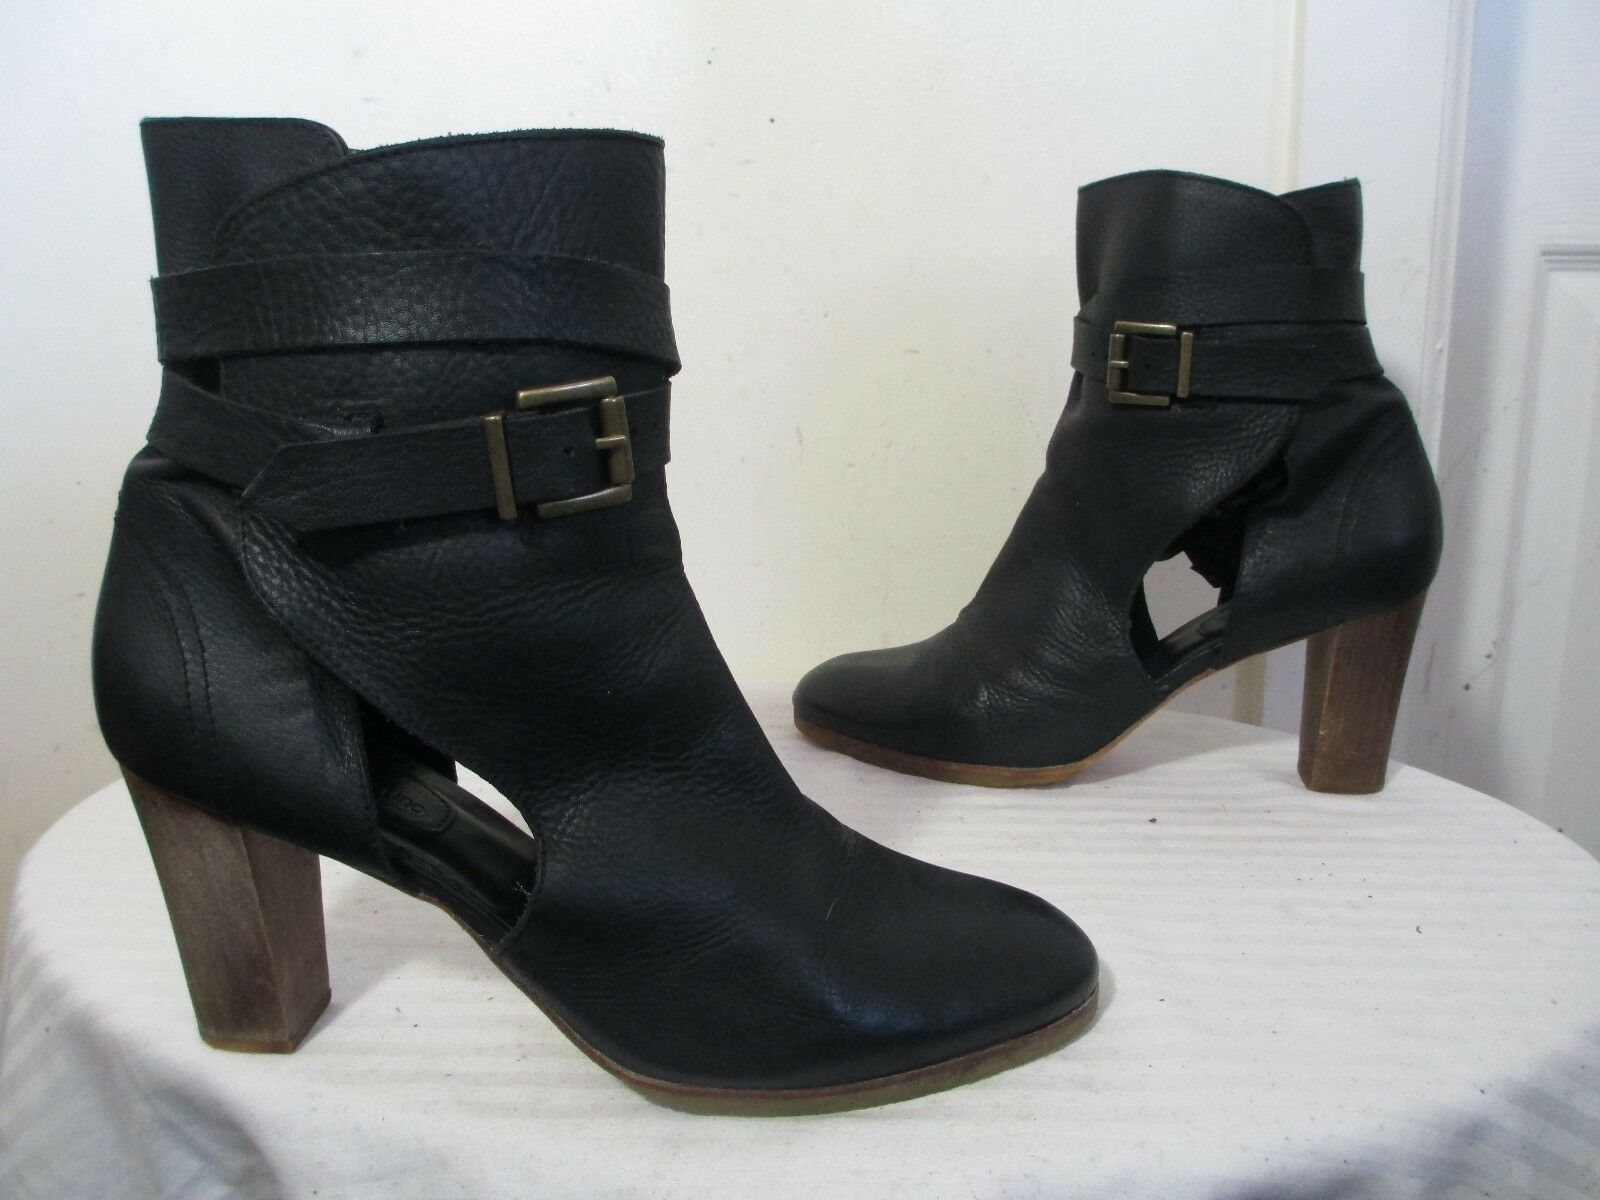 ATHE VANESSA BRUNO nero HEEL avvioIES 41 US 10 MADE  IN ITALIA  outlet